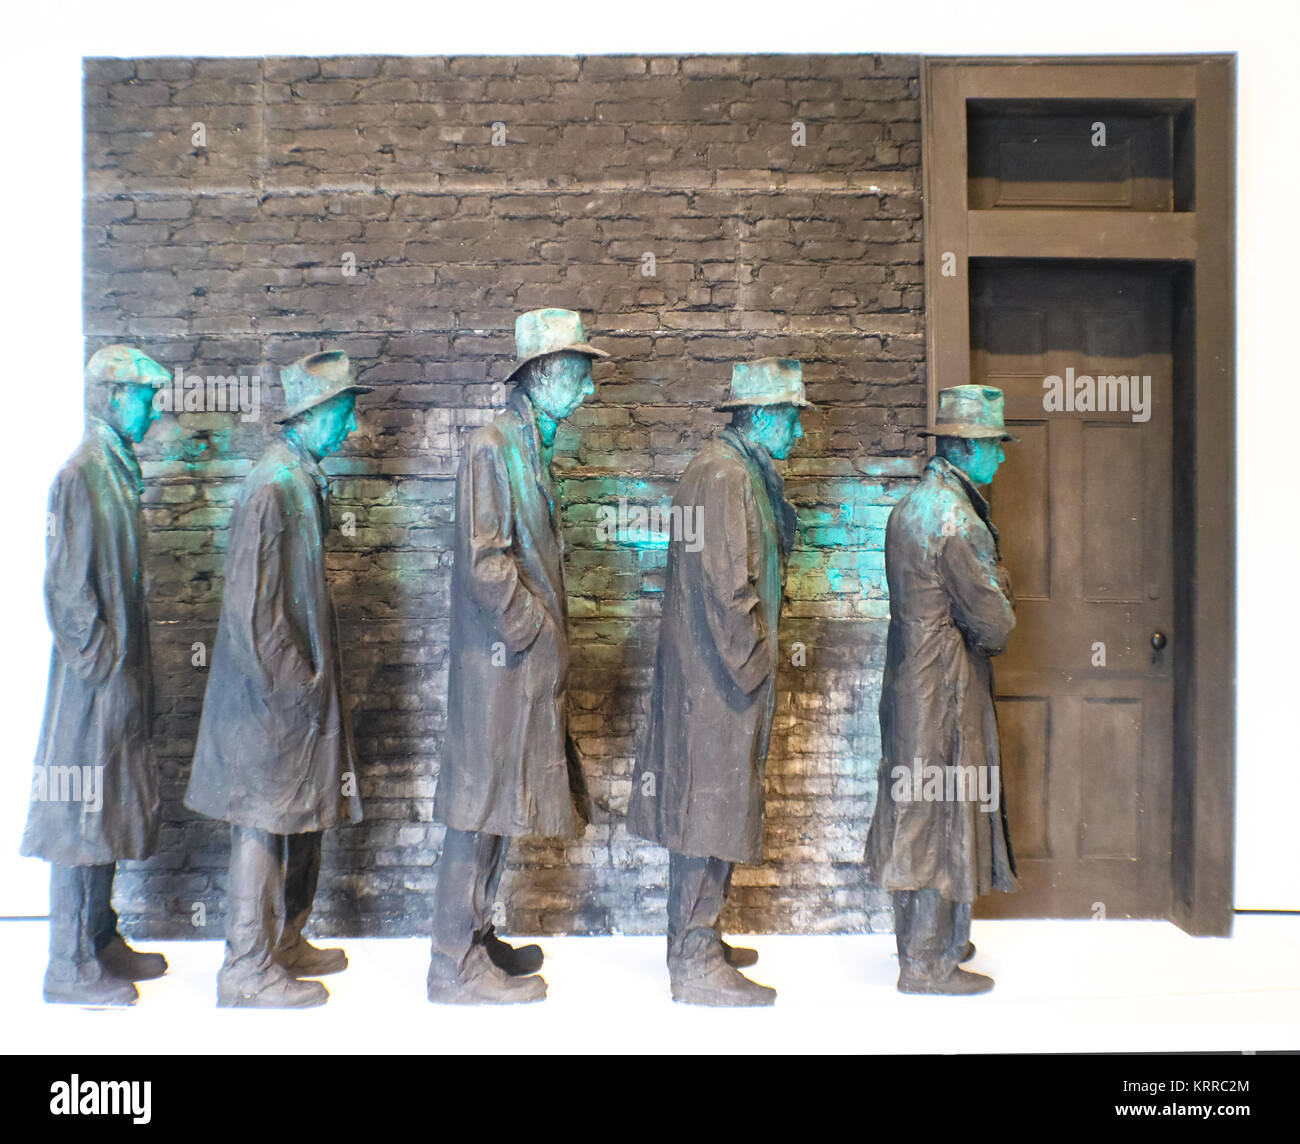 Sculpture of men lined up during US Depression at USA, Arkansas, Bentonville, Crystal Bridges Museum of American - Stock Image